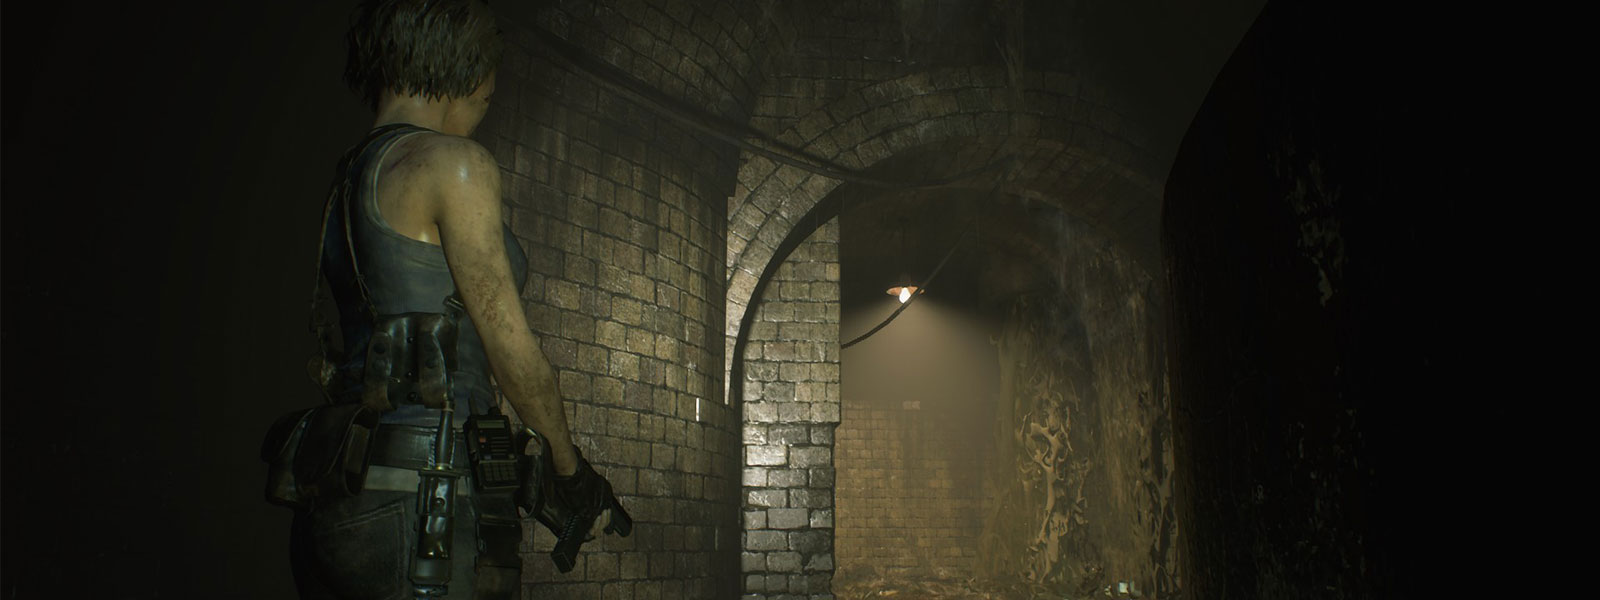 Jill Valentine stands in a dark tunnel with her gun drawn.